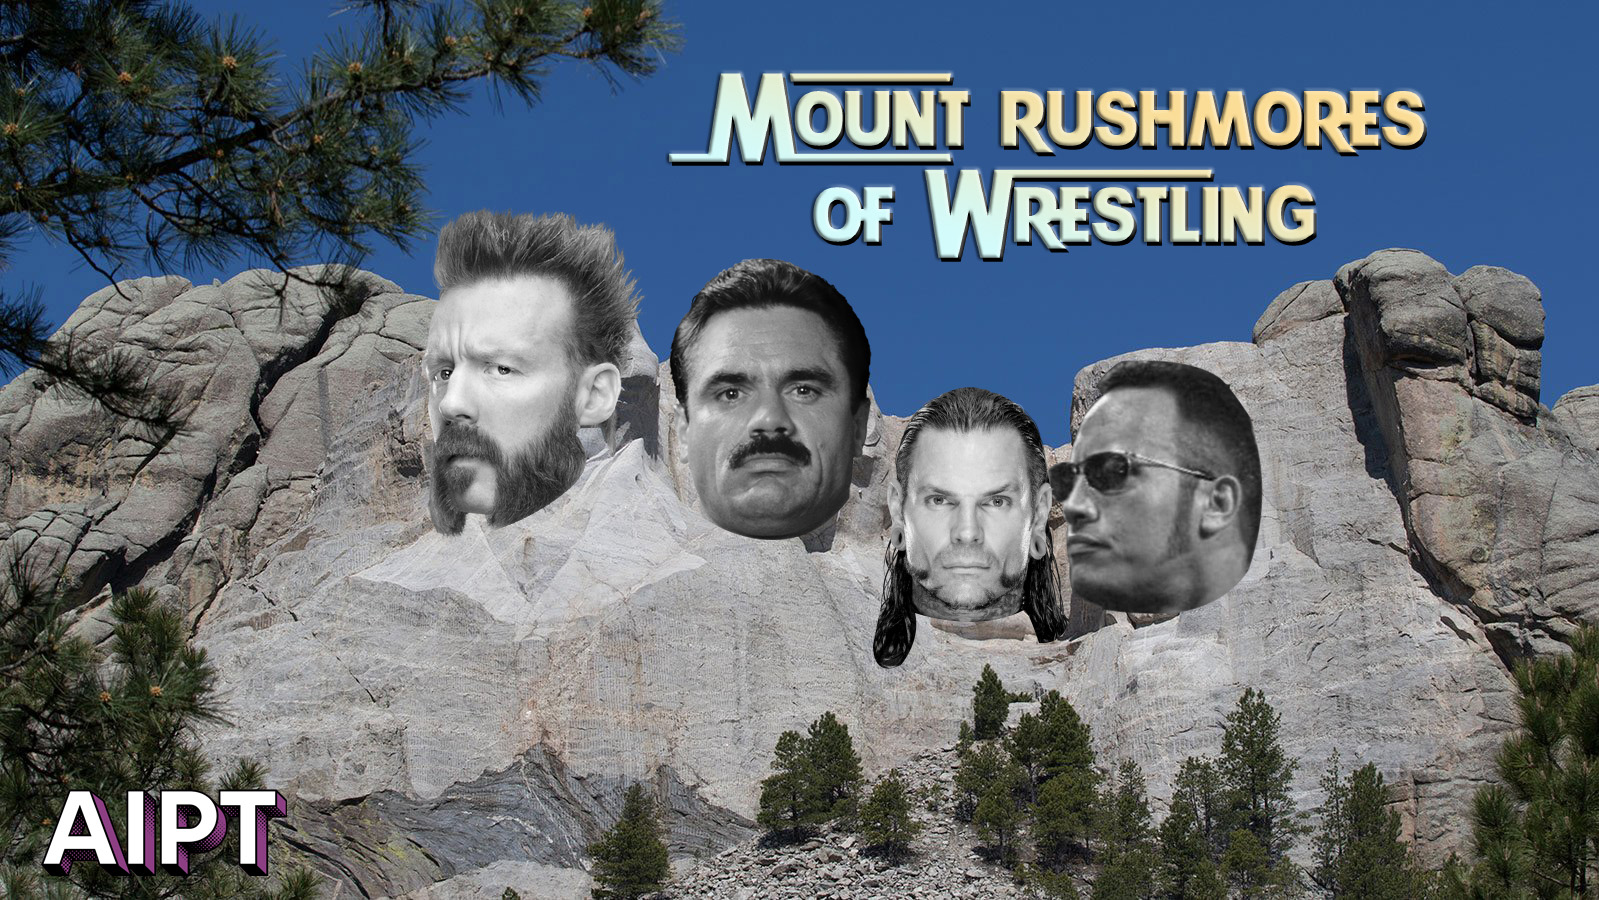 Mt. Rushmores of Wrestling: Iconic facial hair